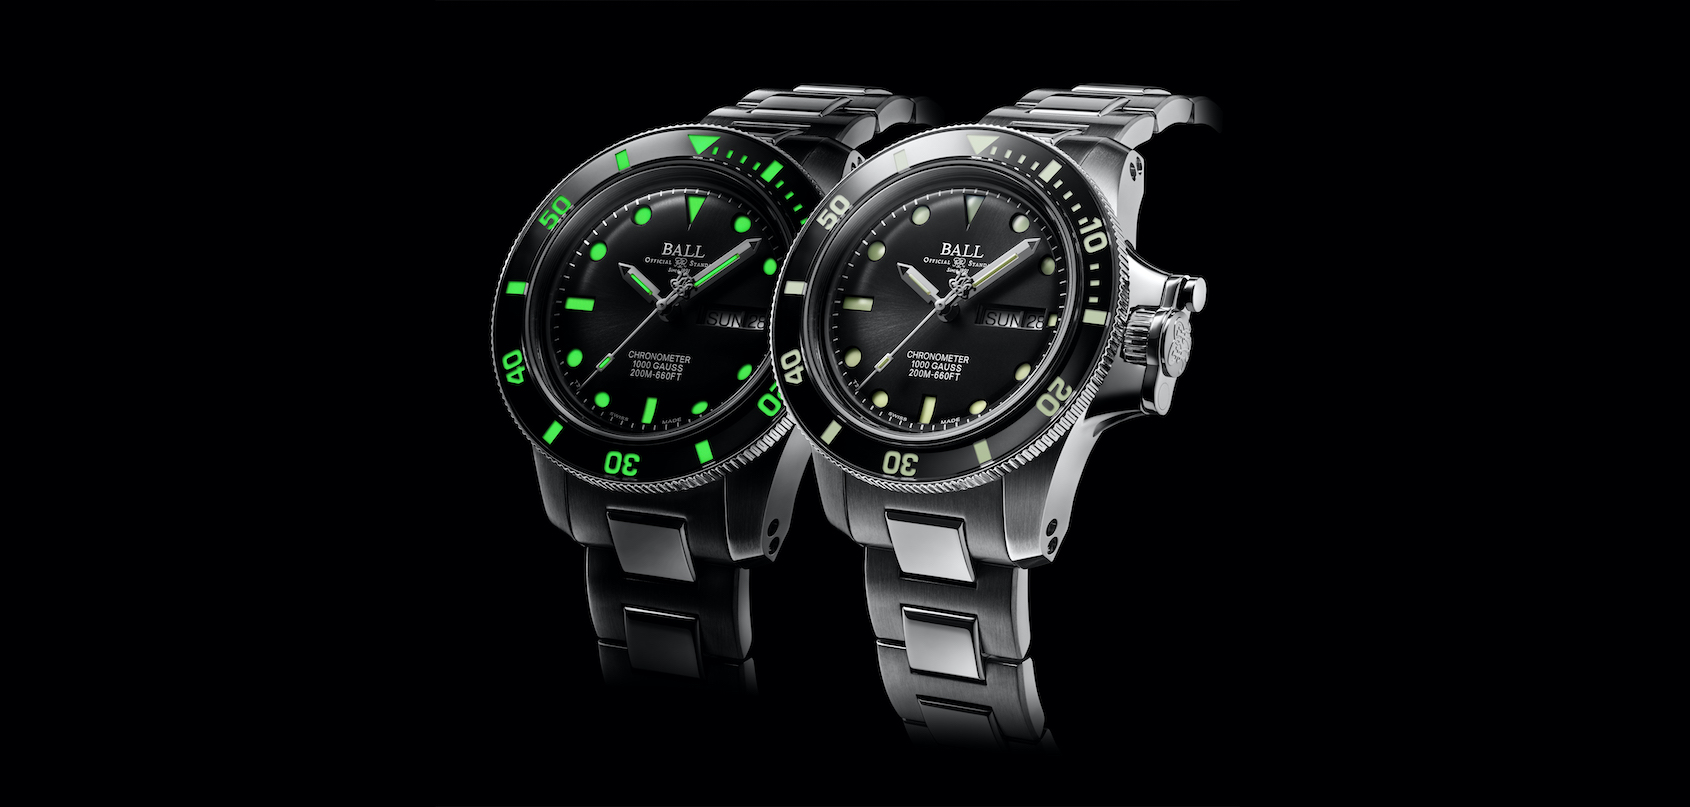 INTRODUCING: The Ball Engineer Hydrocarbon Original is a bulletproof diver with a brutal point of difference